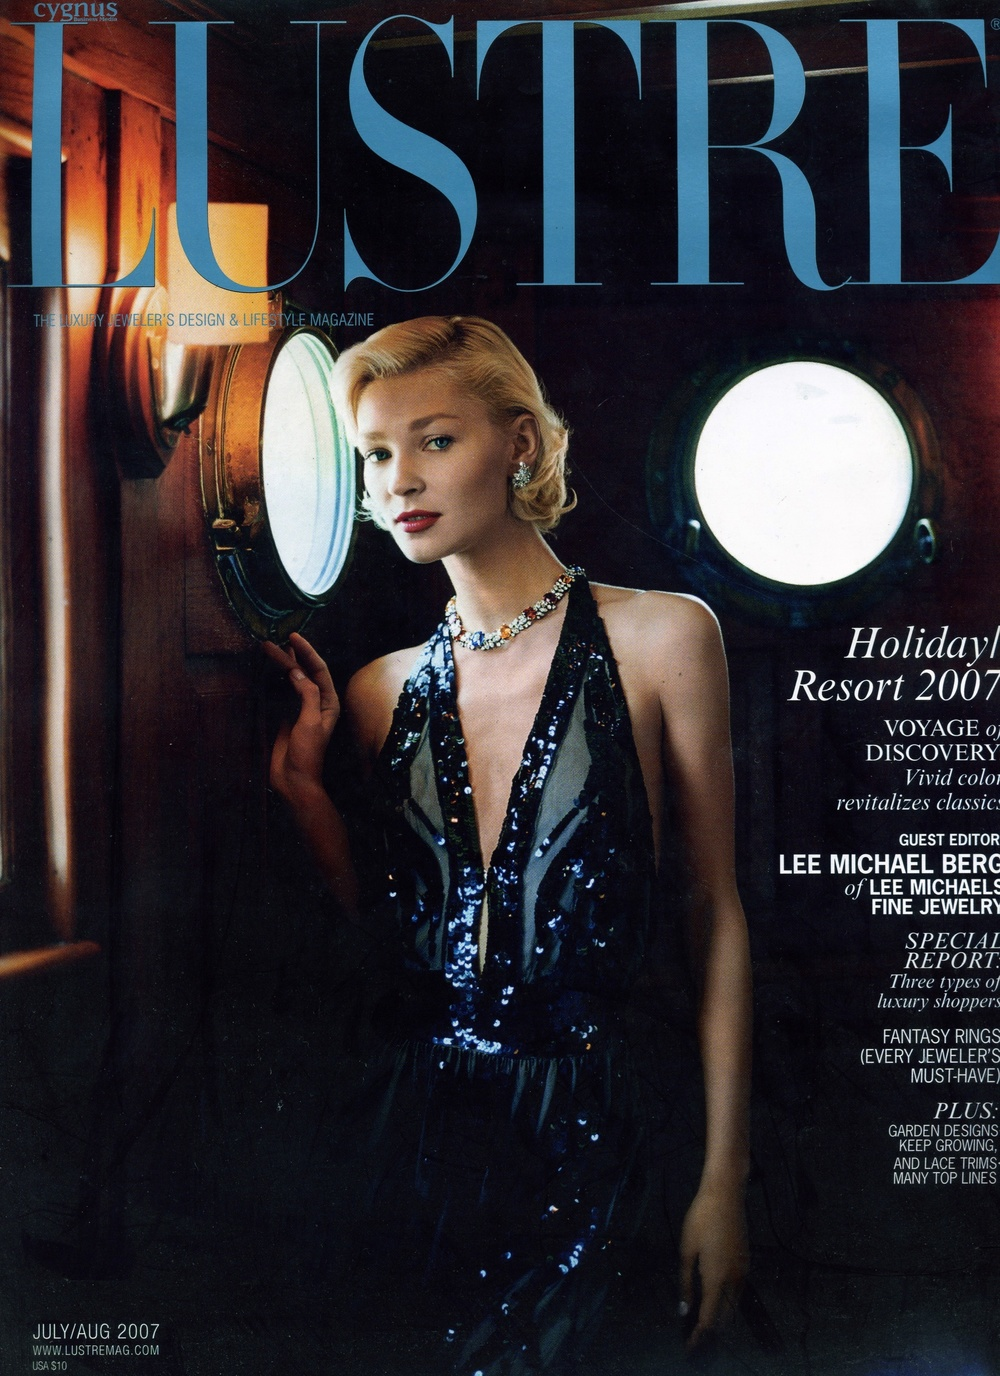 lustre cover July - aug 07.jpg